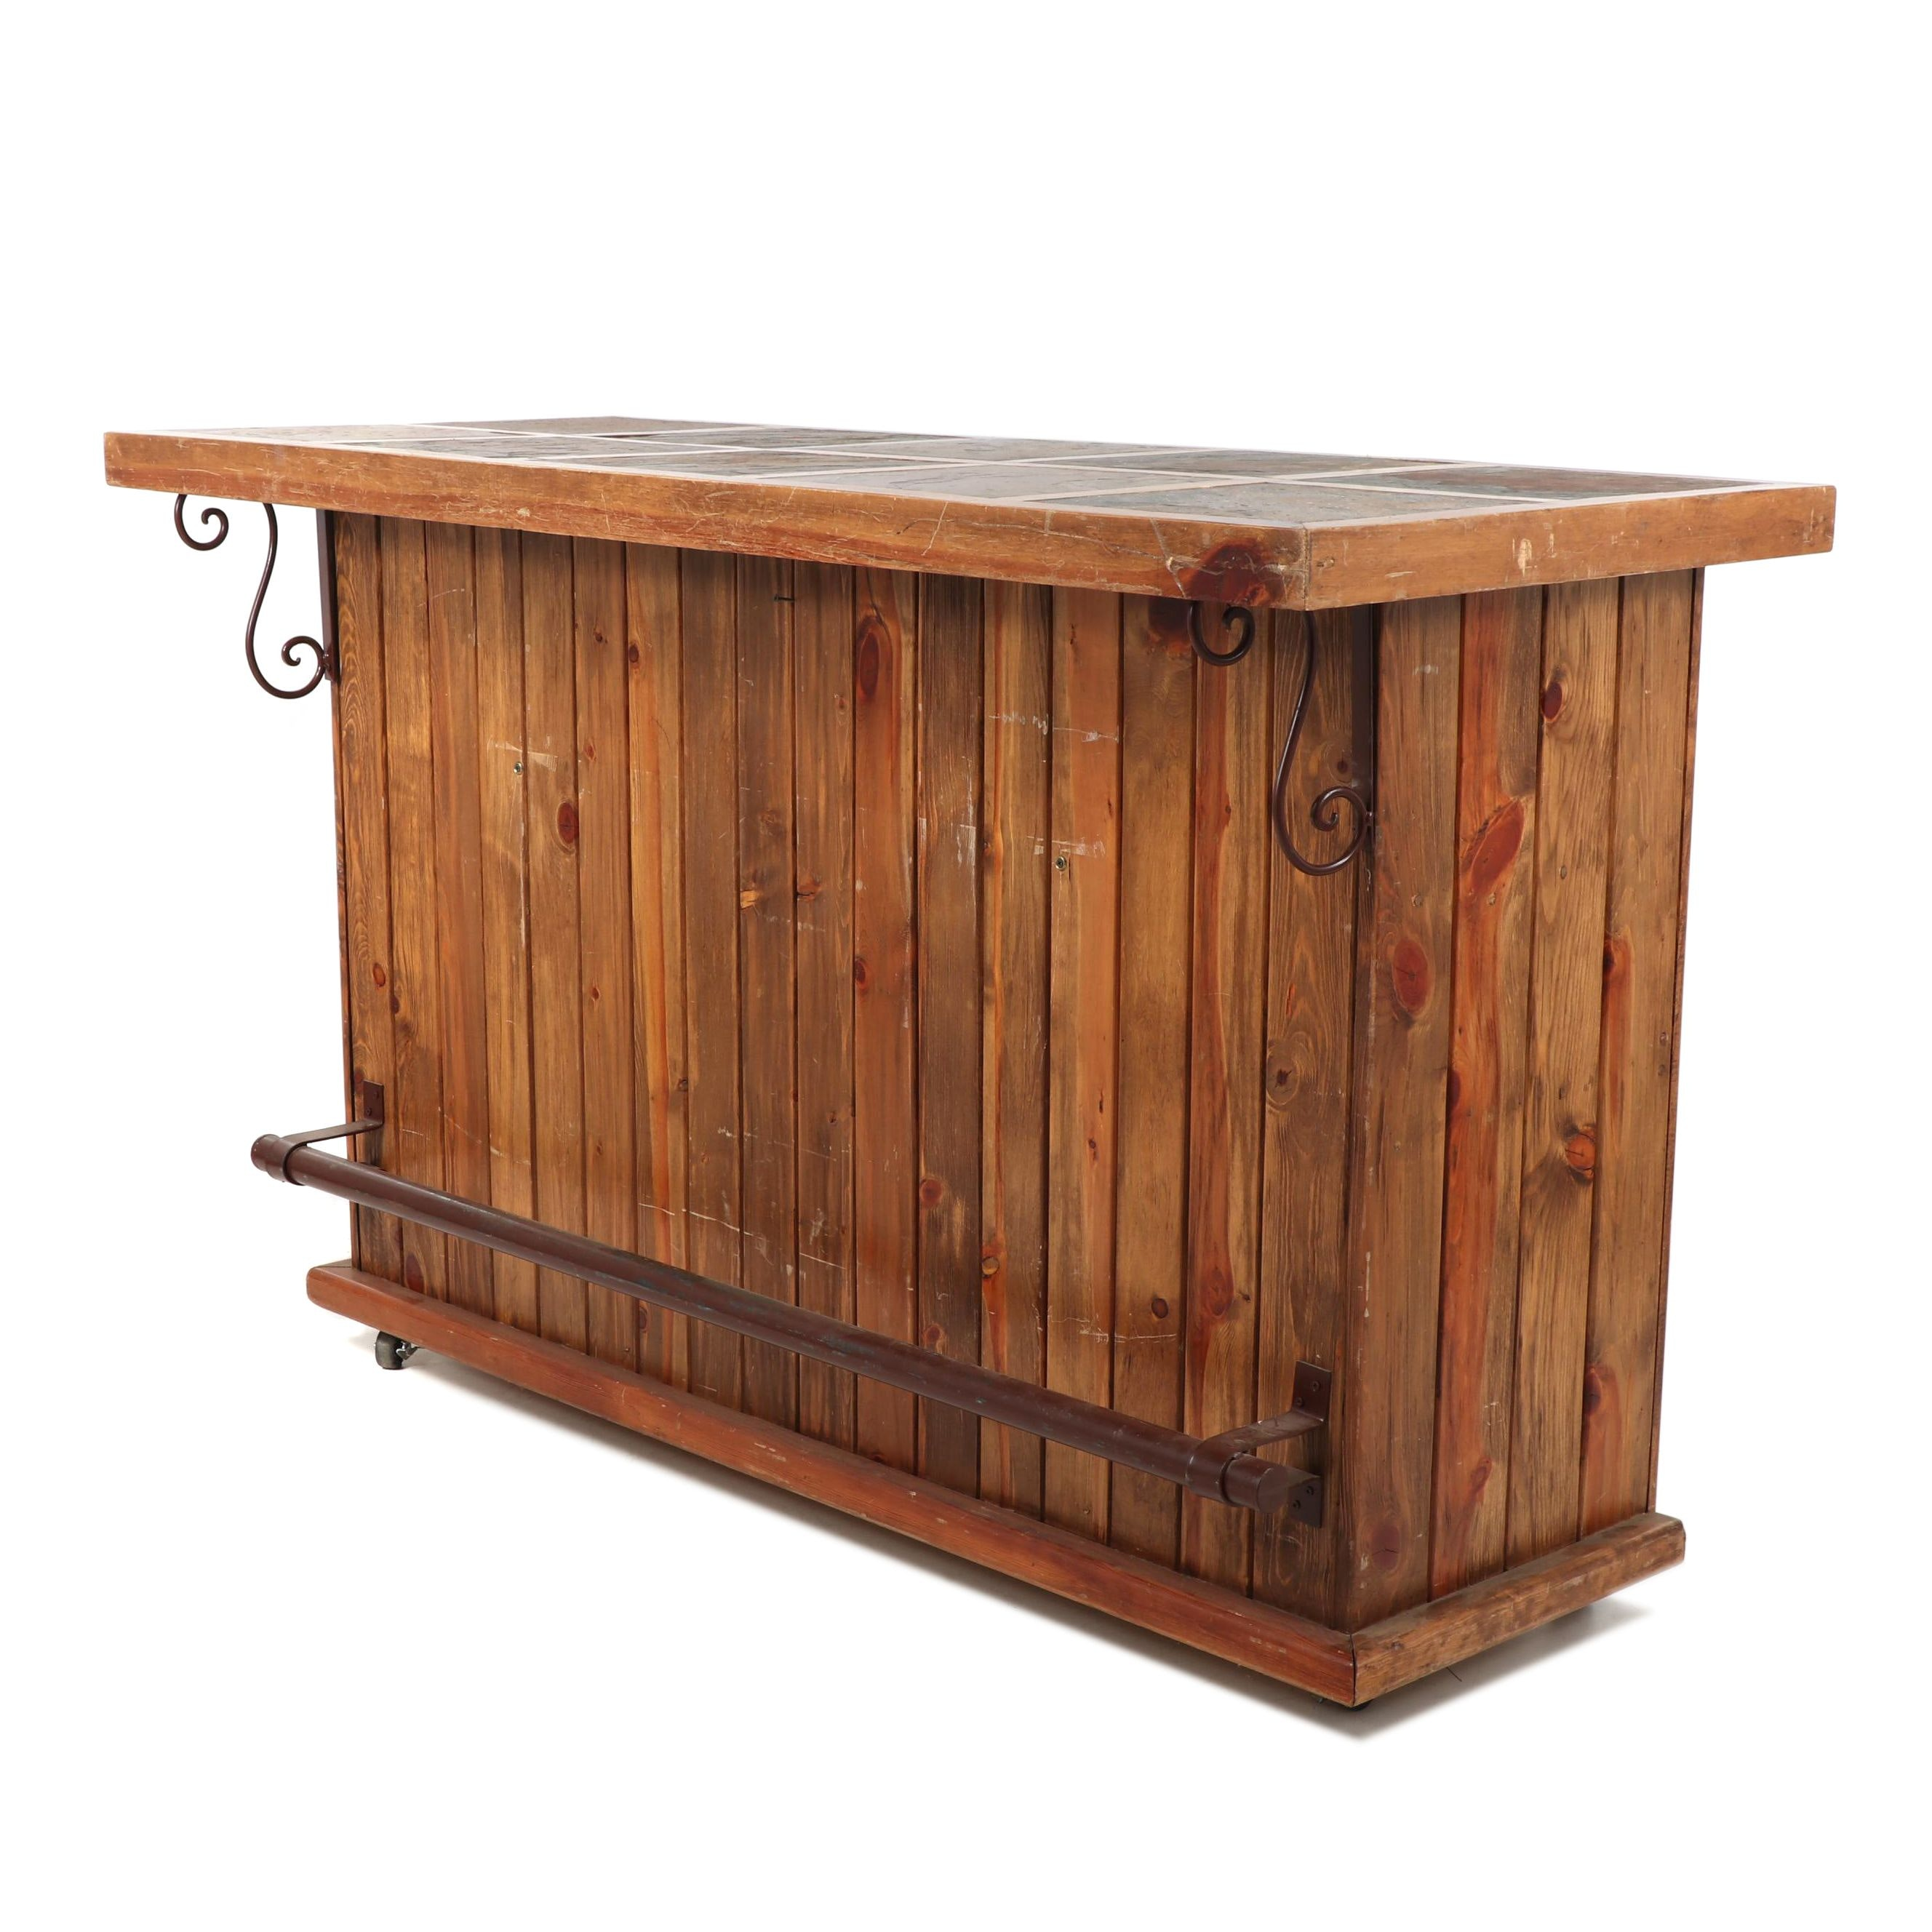 Rustic Pine Bar with Slate Tile Top, Contemporary